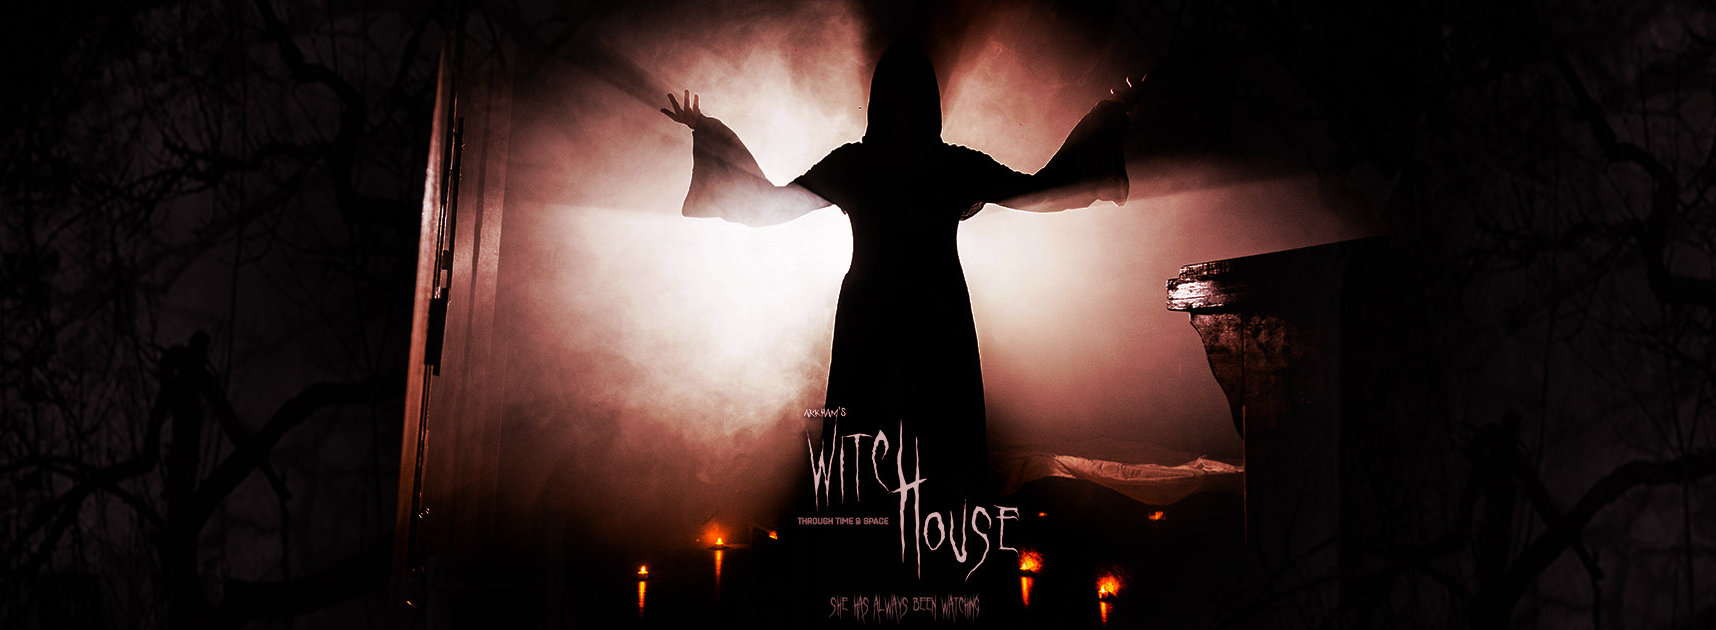 200612 new witchouse 2 strip.jpg